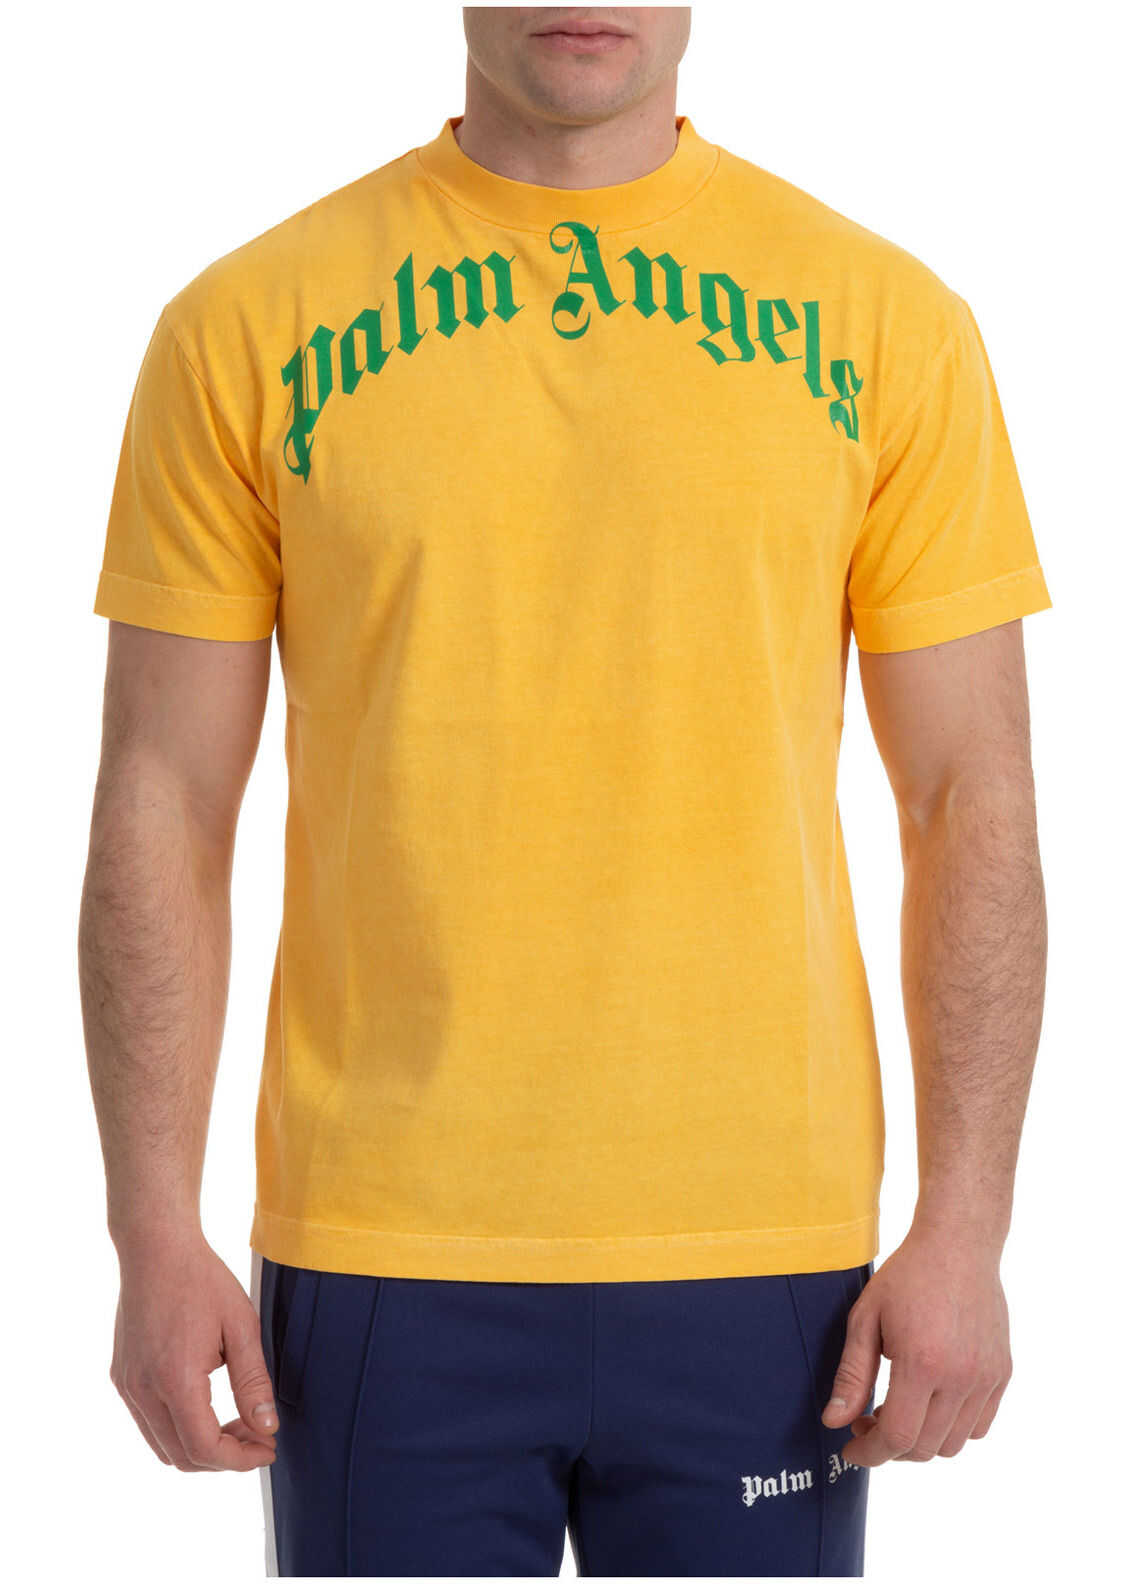 Palm Angels Curved Logo Yellow imagine